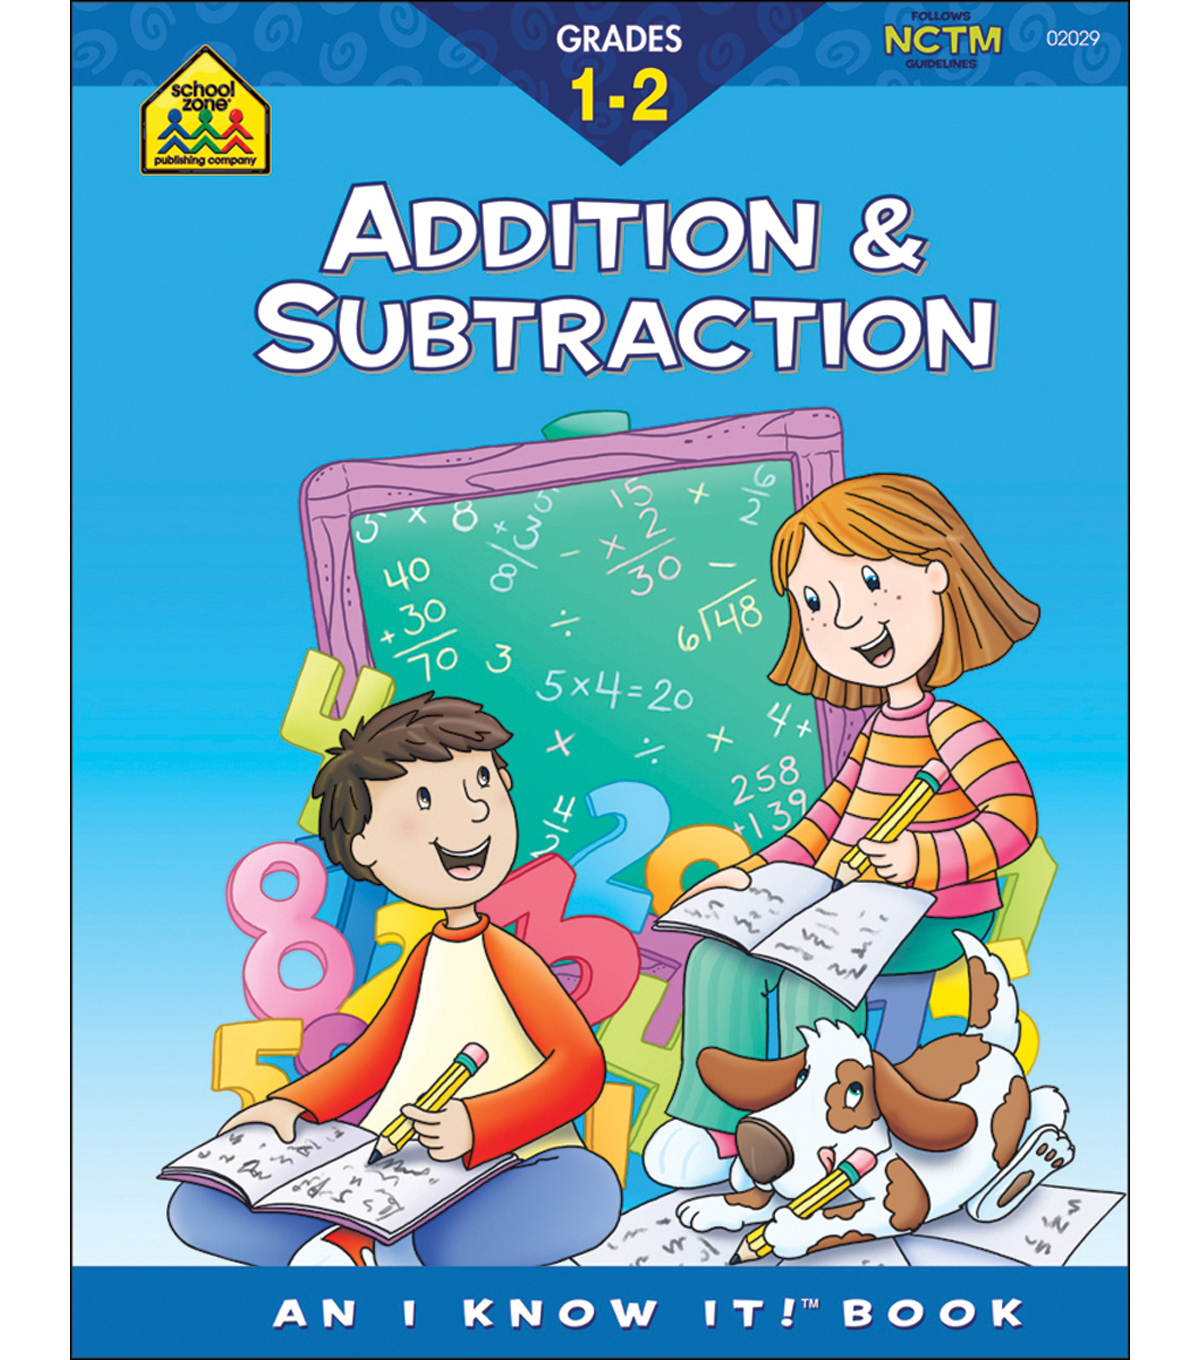 School Zone Curriculum Workbooks-Addition & Subtraction | JOANN